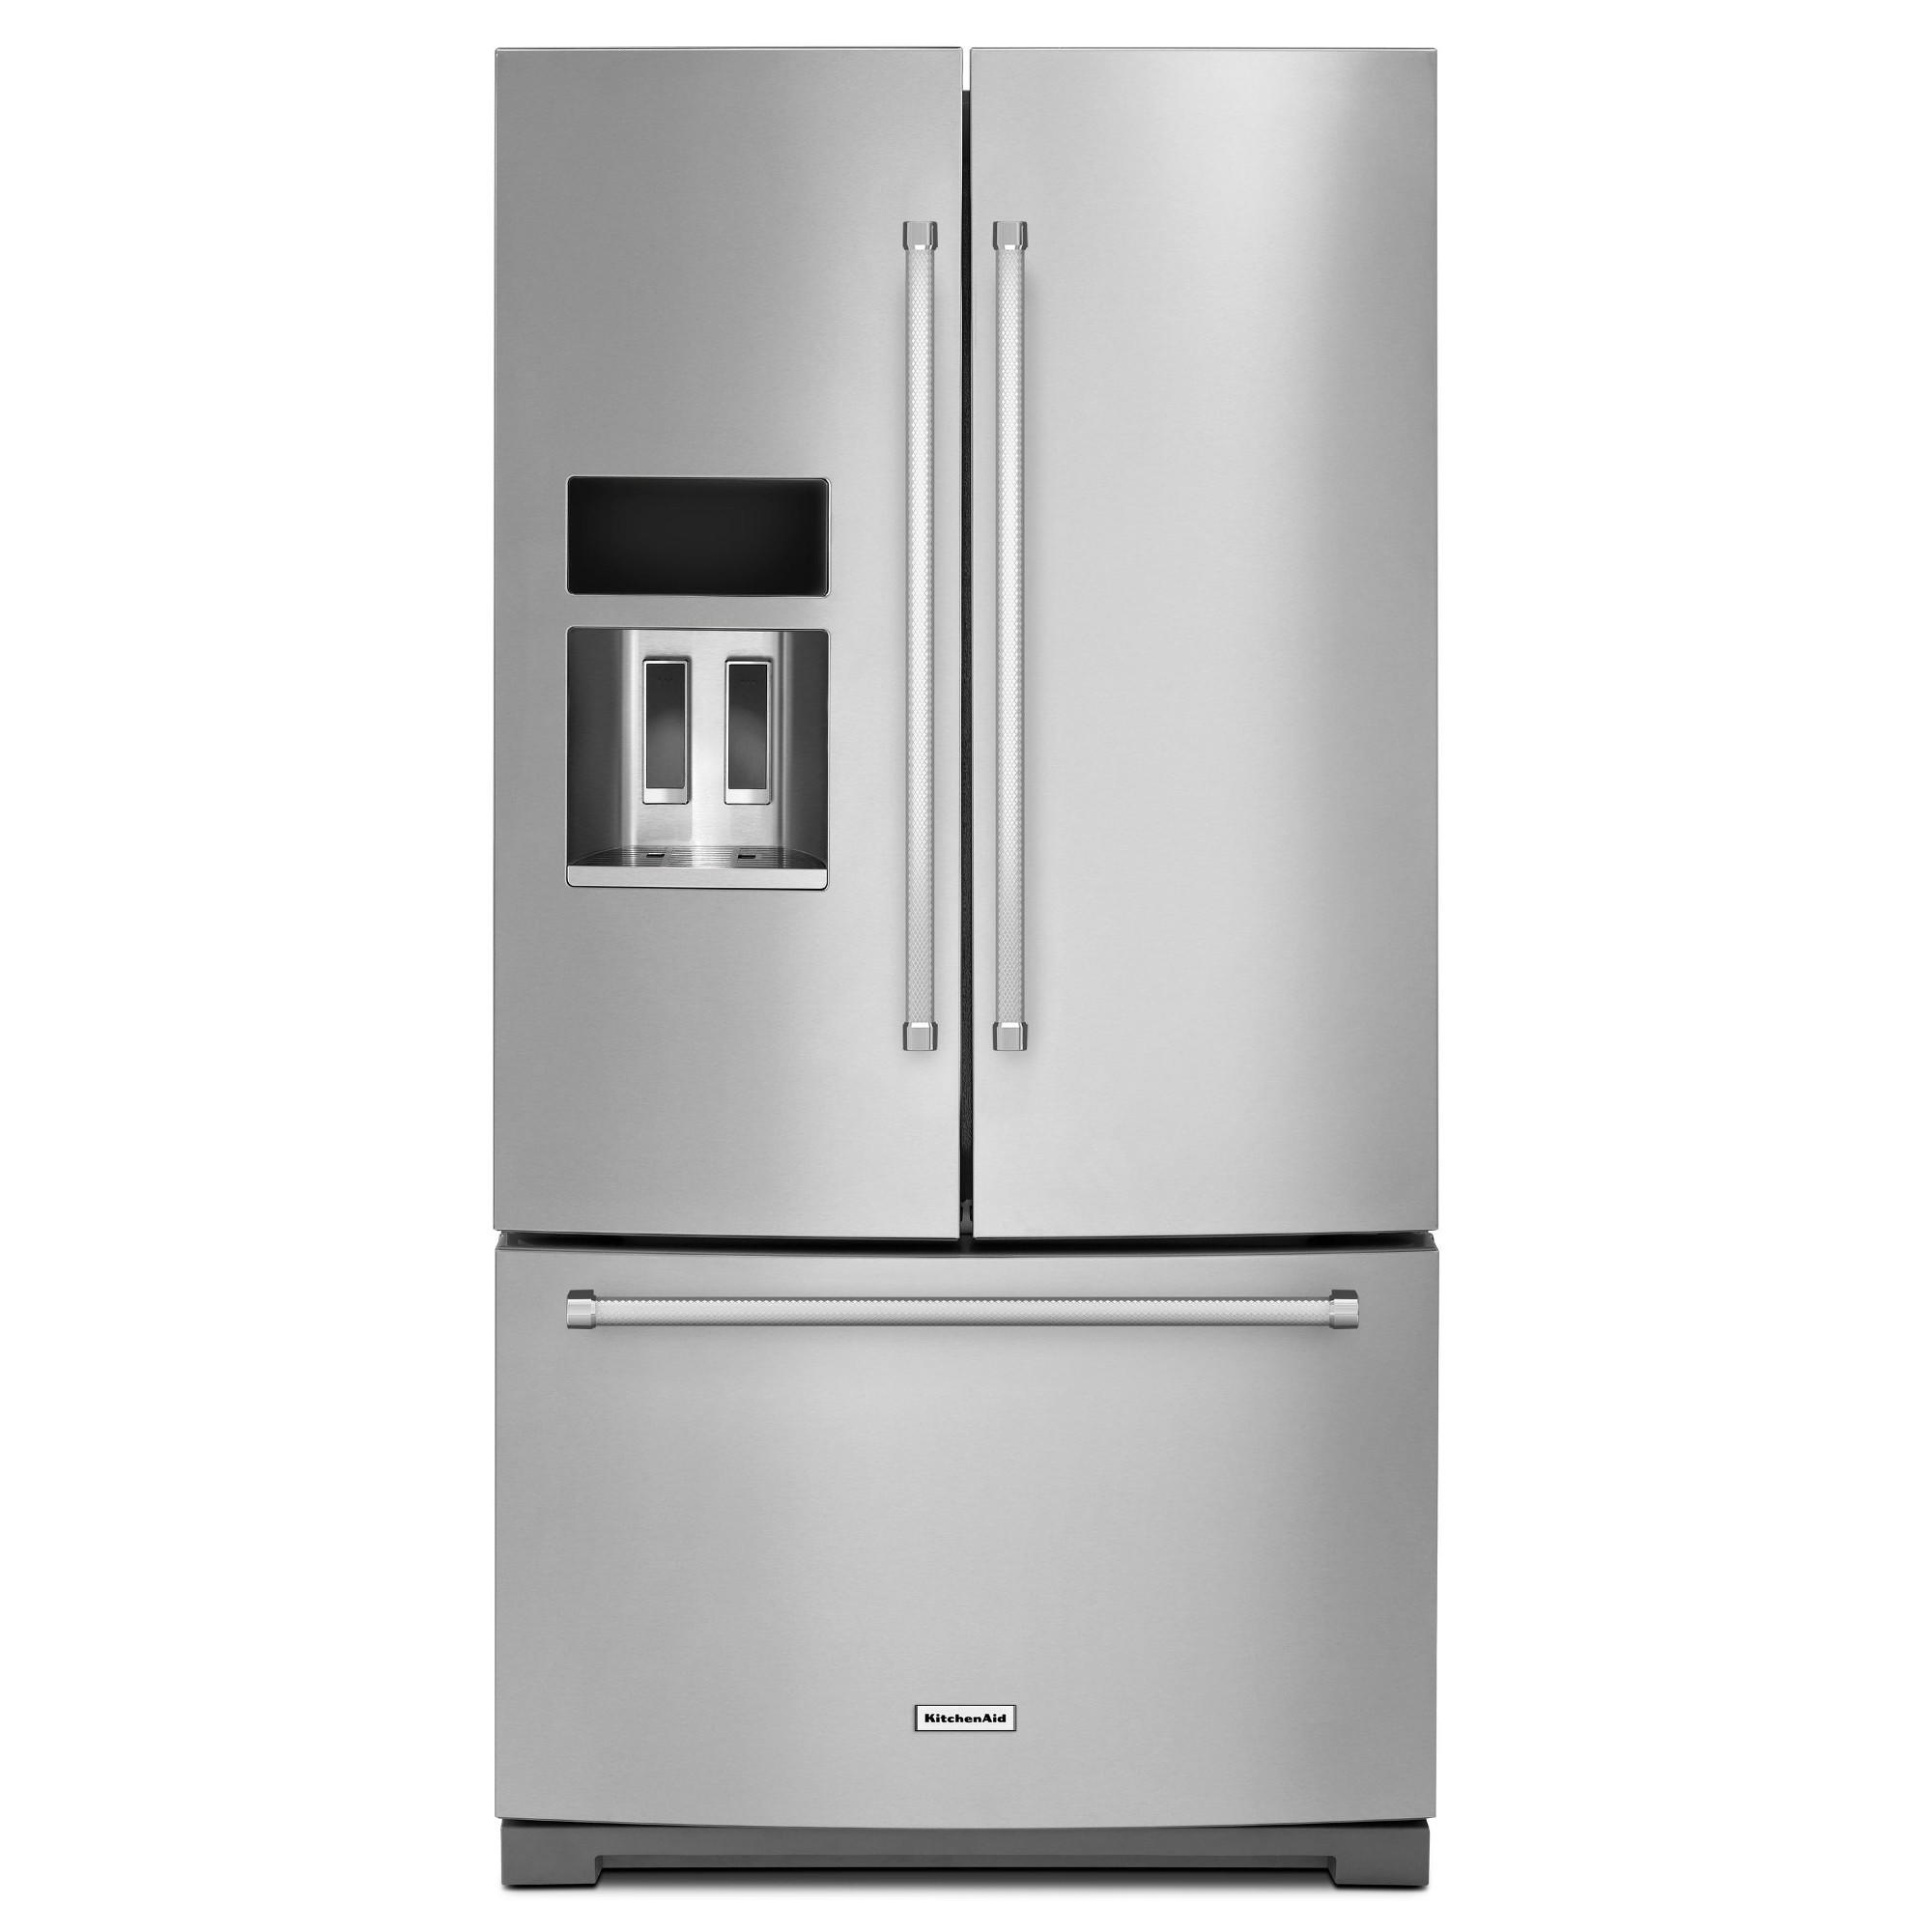 KitchenAid KRFF507ESS 26.8 cu. ft. French Door Refrigerator - Stainless Steel